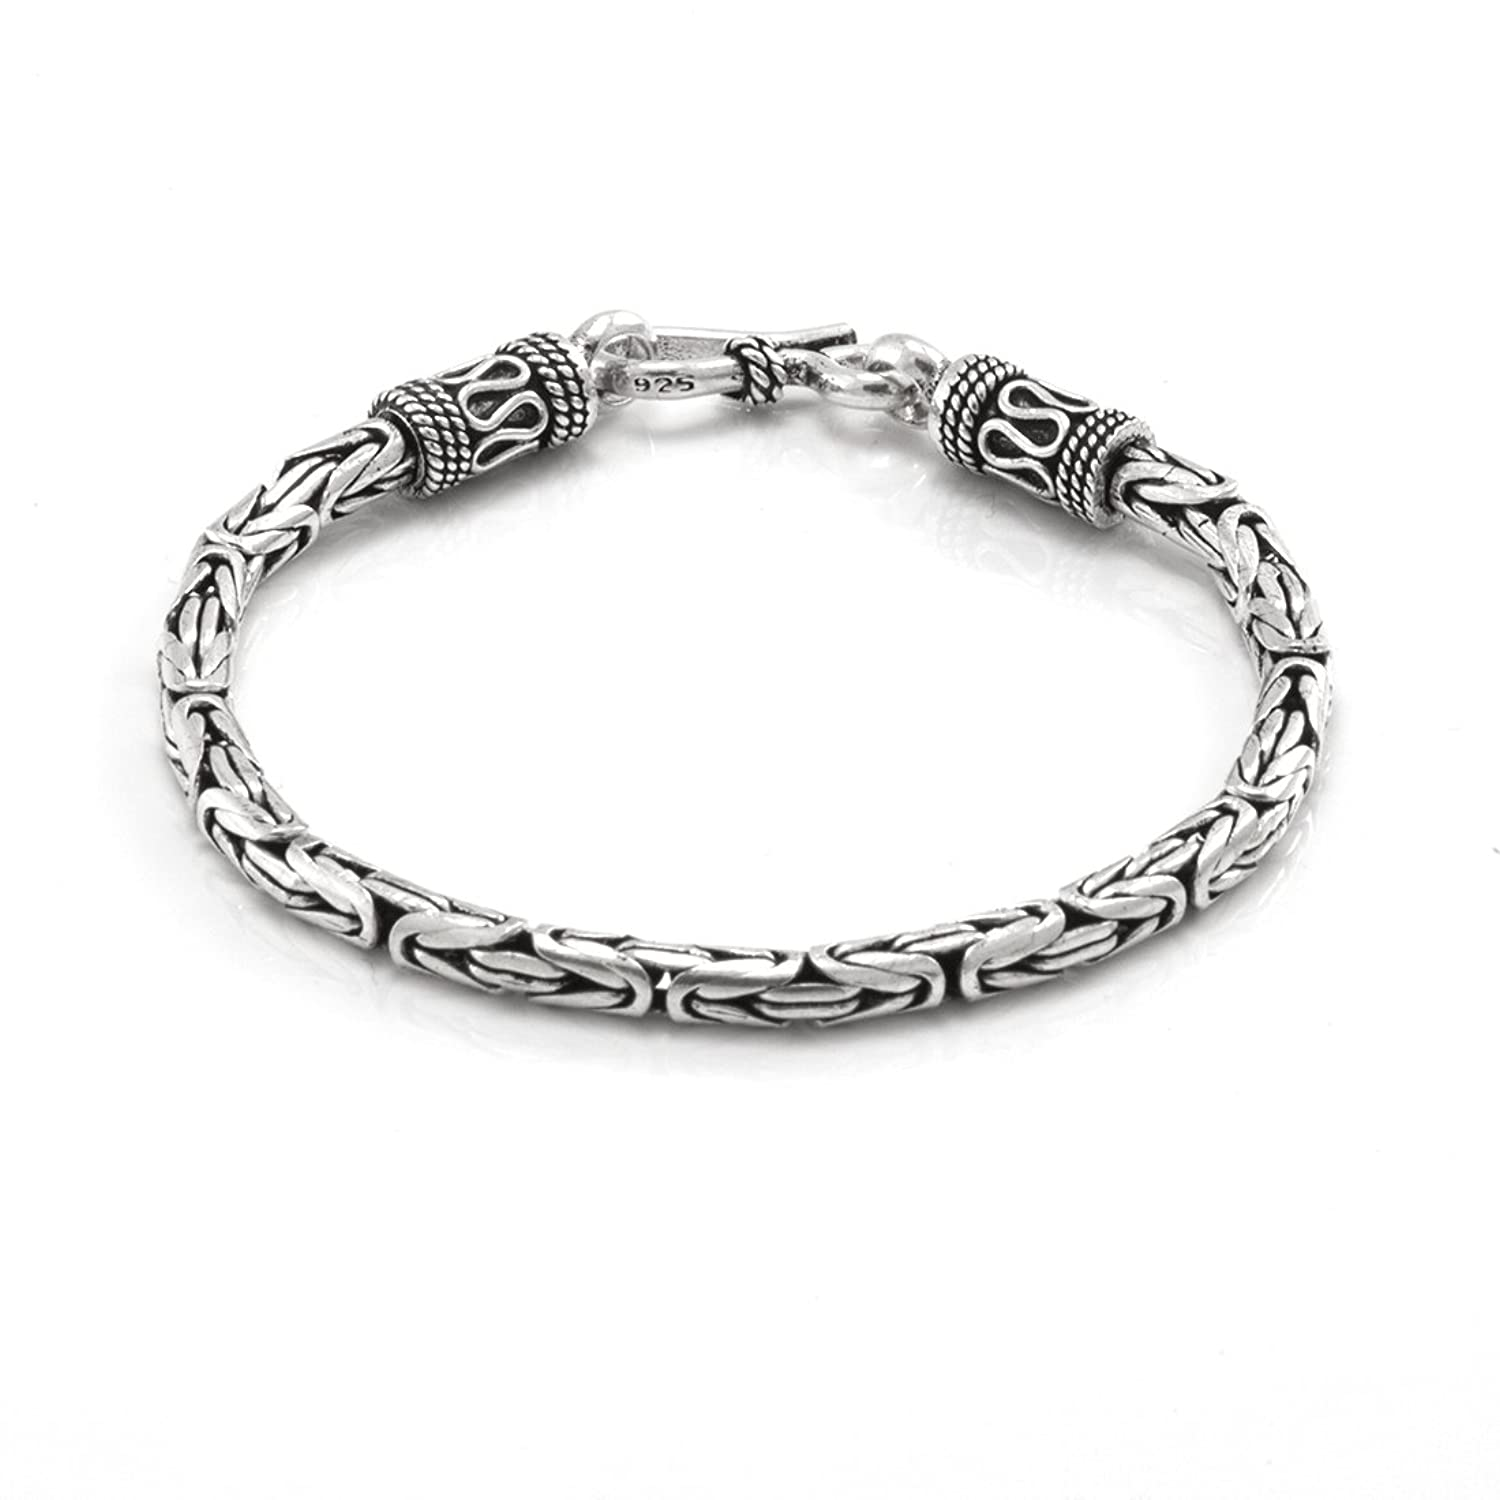 bracelet necklace jewelry michael silver curb collar product silvertone chain no logo kors color lyst plate gallery